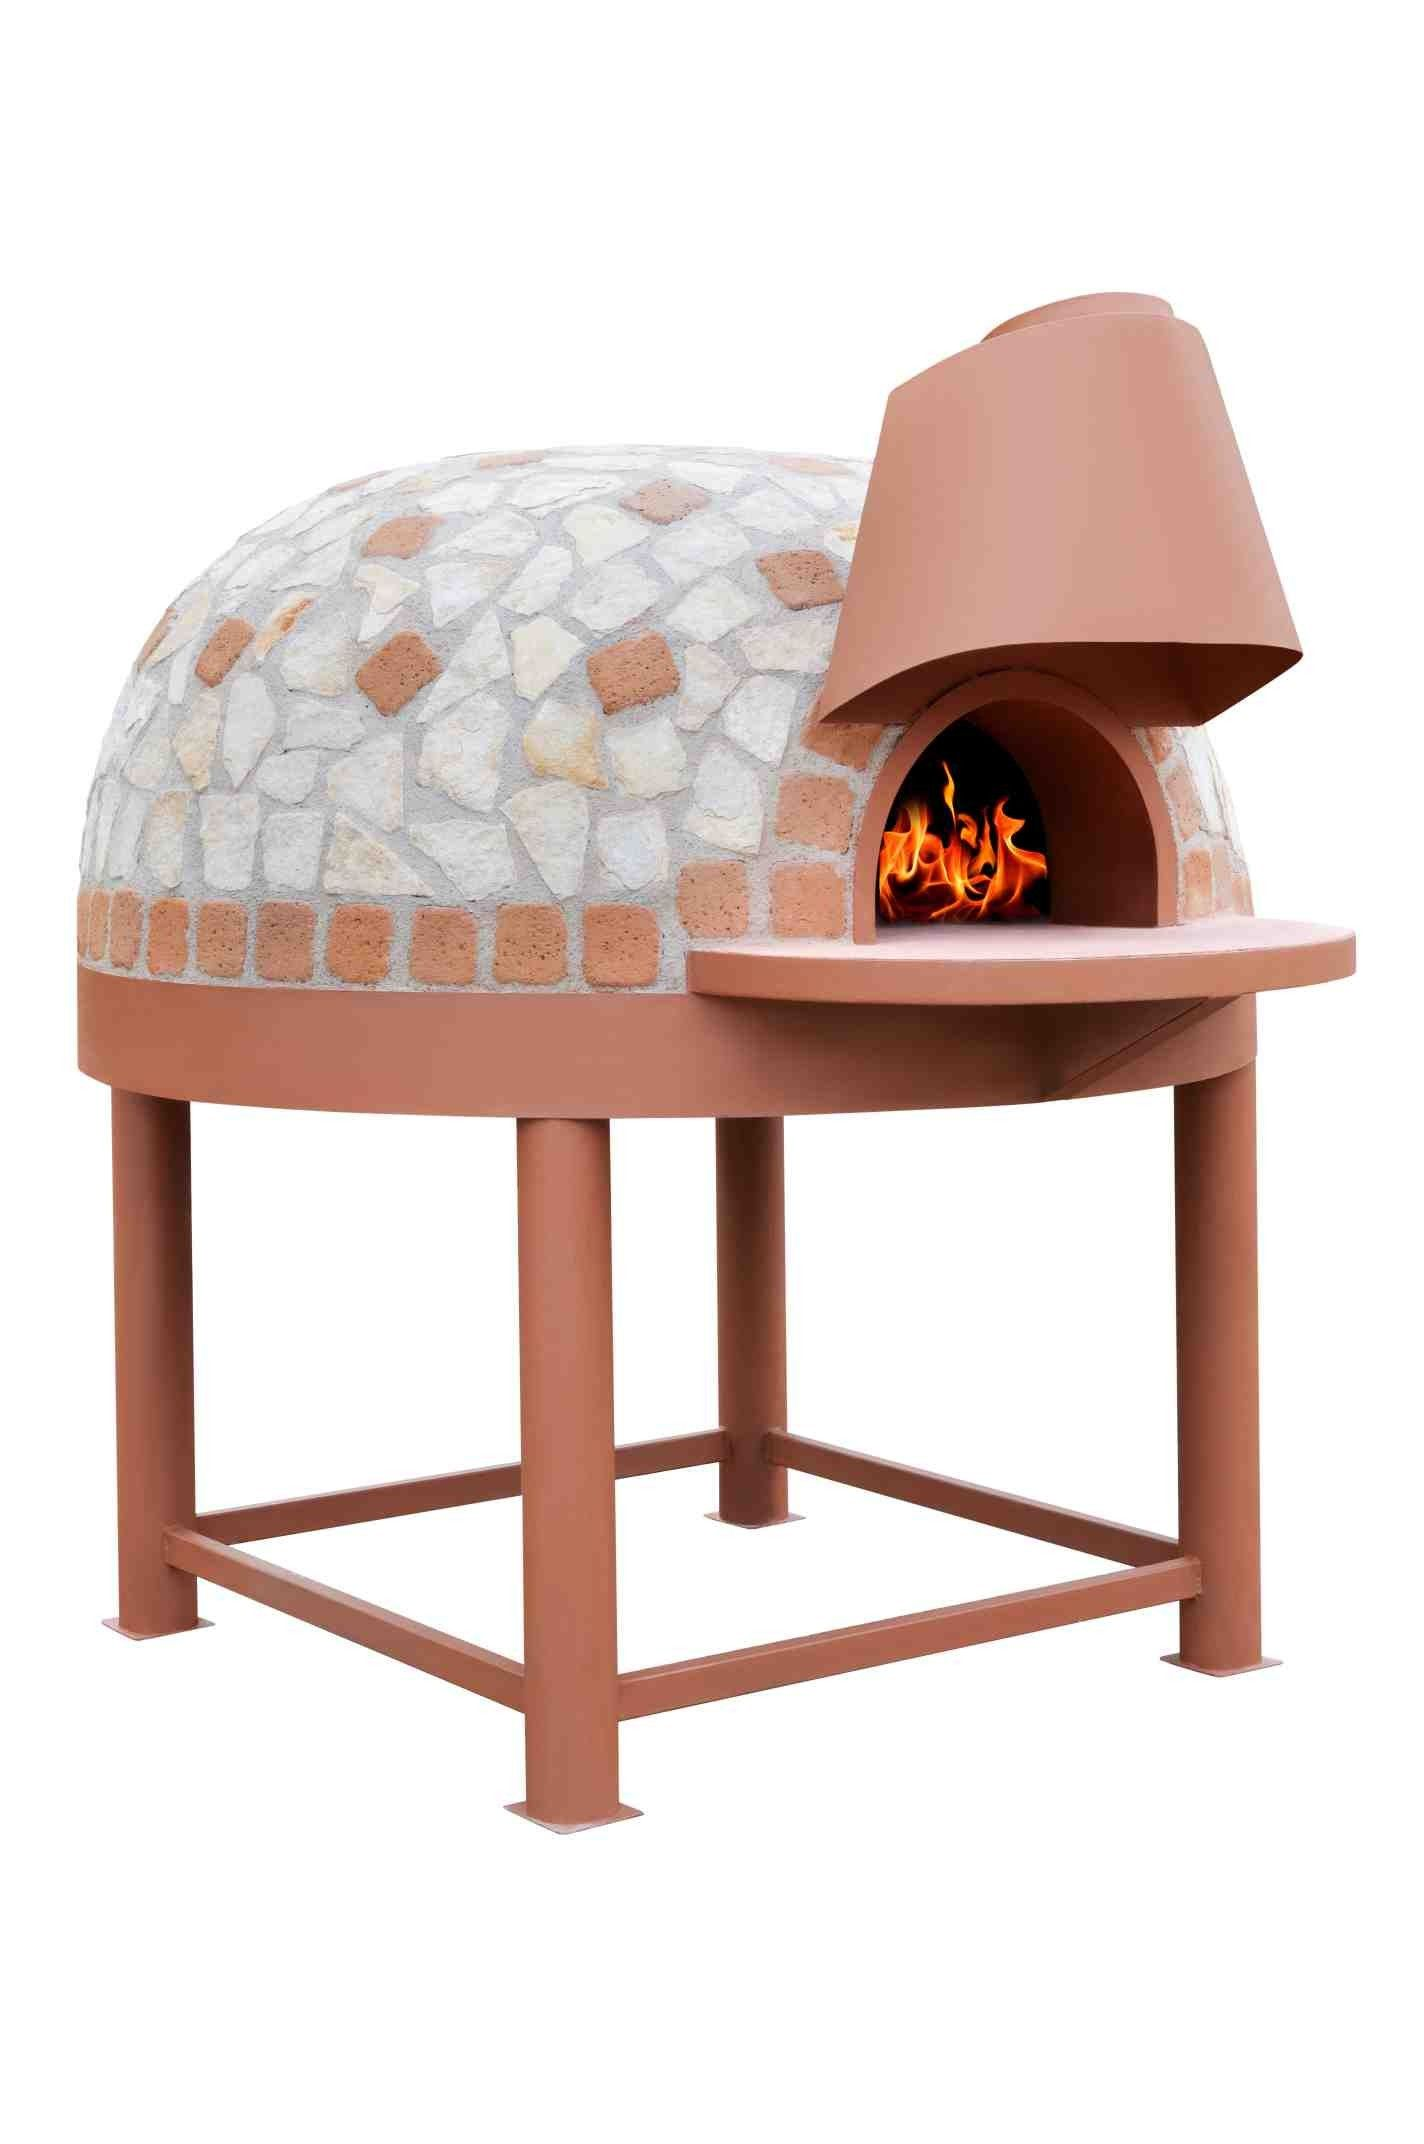 Commercial Wood Fired Pizza Oven Pizza Oven Wood Fired Pizza Oven Pizza Oven Outdoor Kitchen